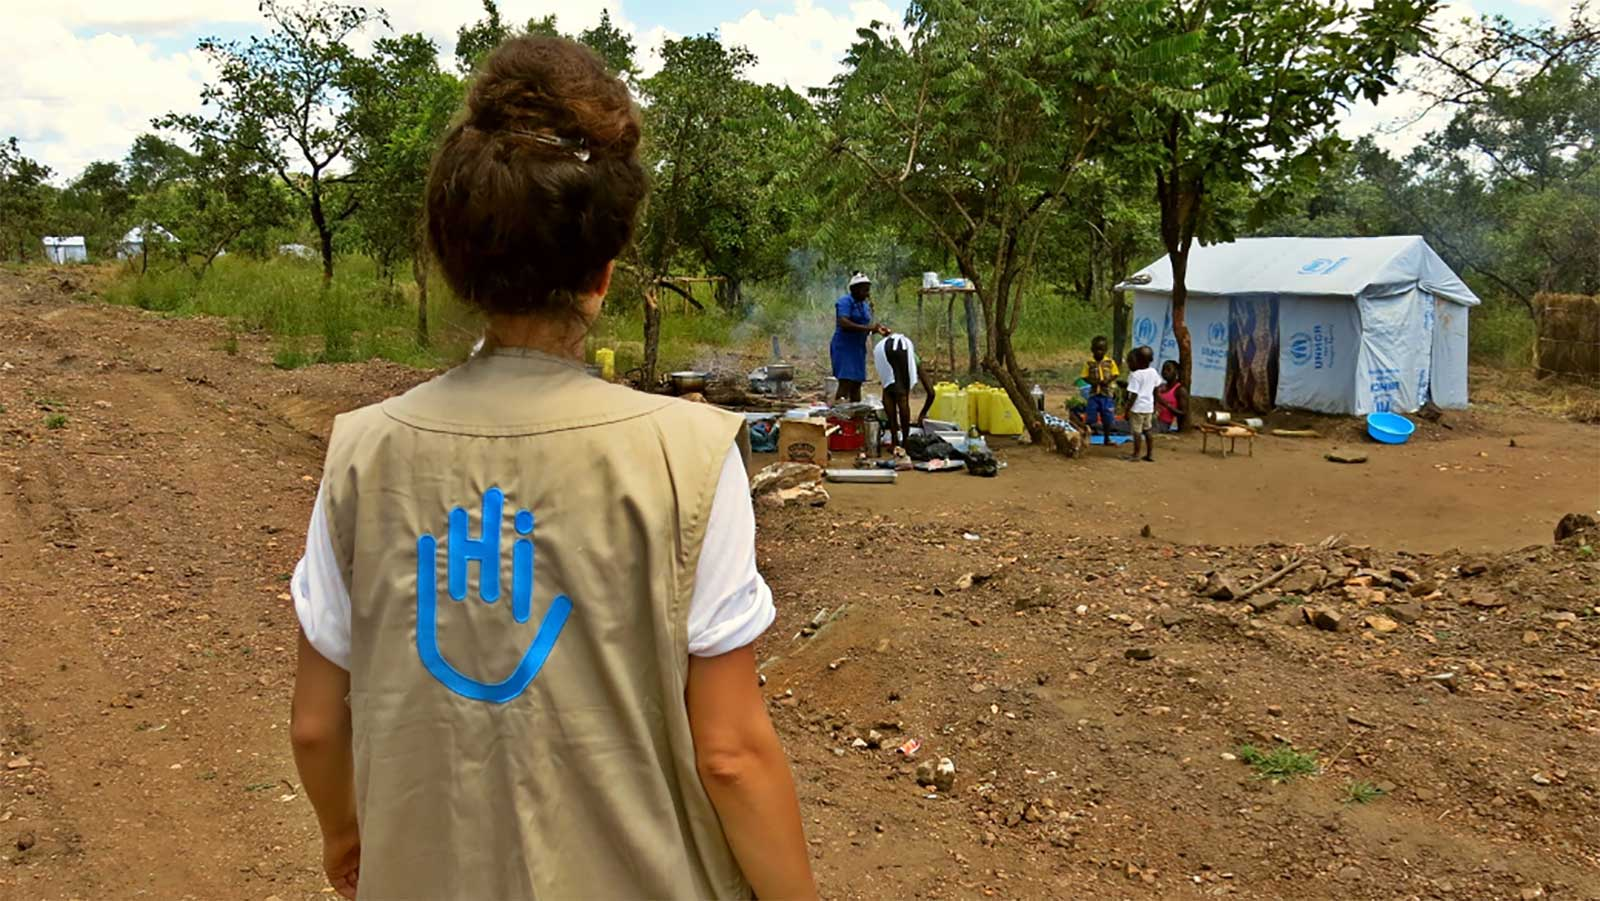 A-female-wearing-a-vest-with-the-Humanity- -Inclusion-logo-stands-across-from-a-family-at-a-refugee-camp-in-Uganda